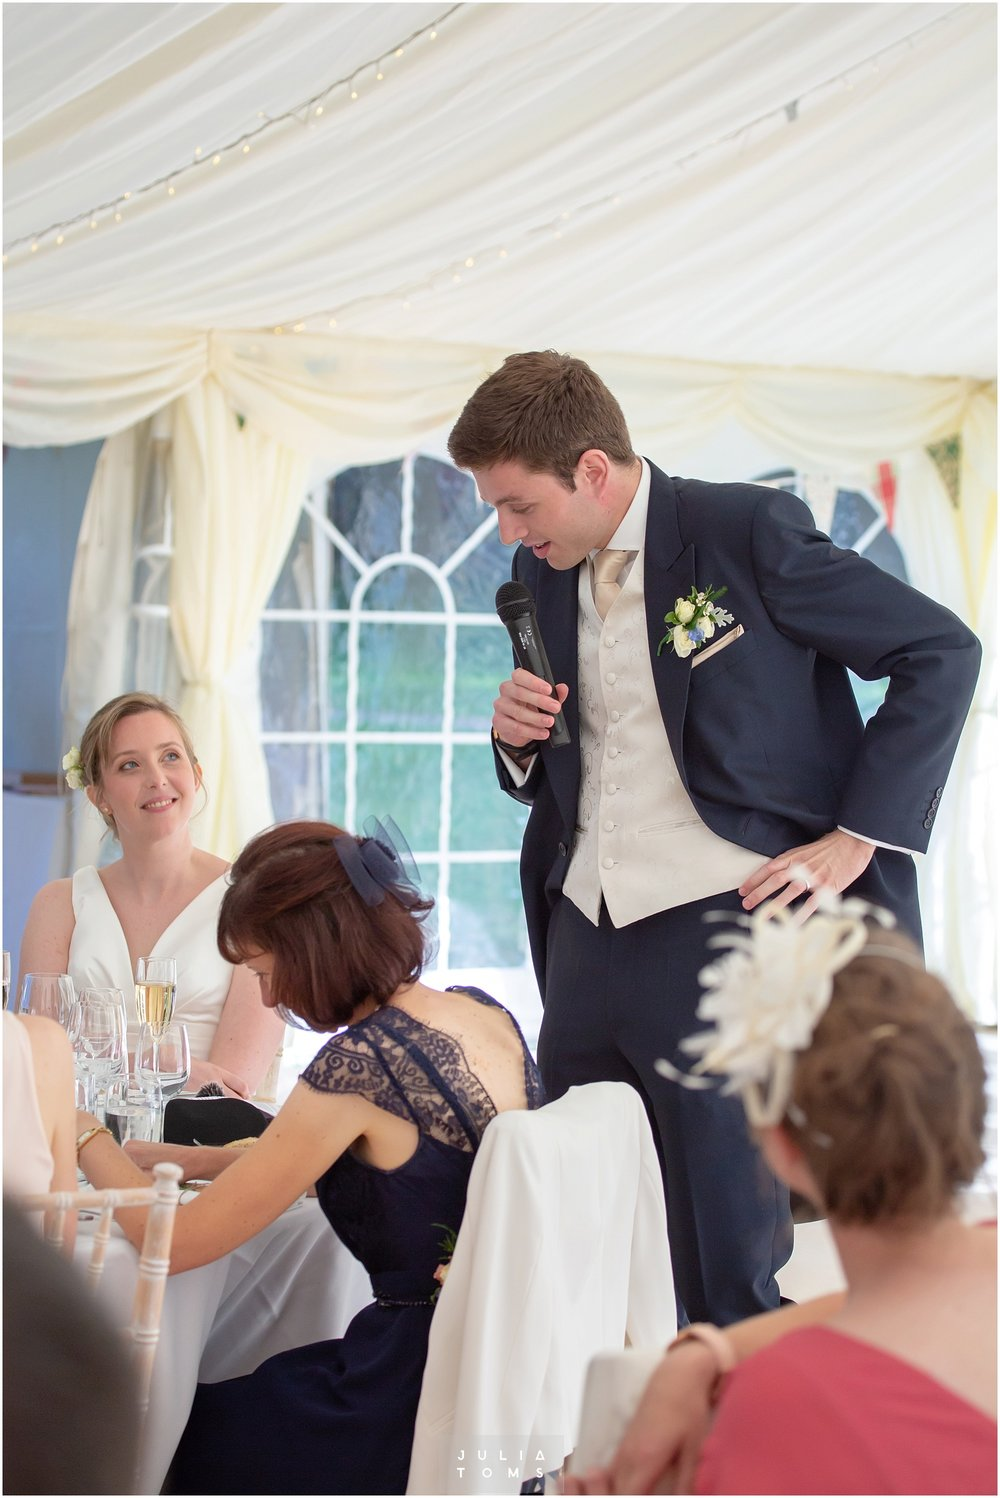 westsussex_wedding_photographer_westdean_117.jpg